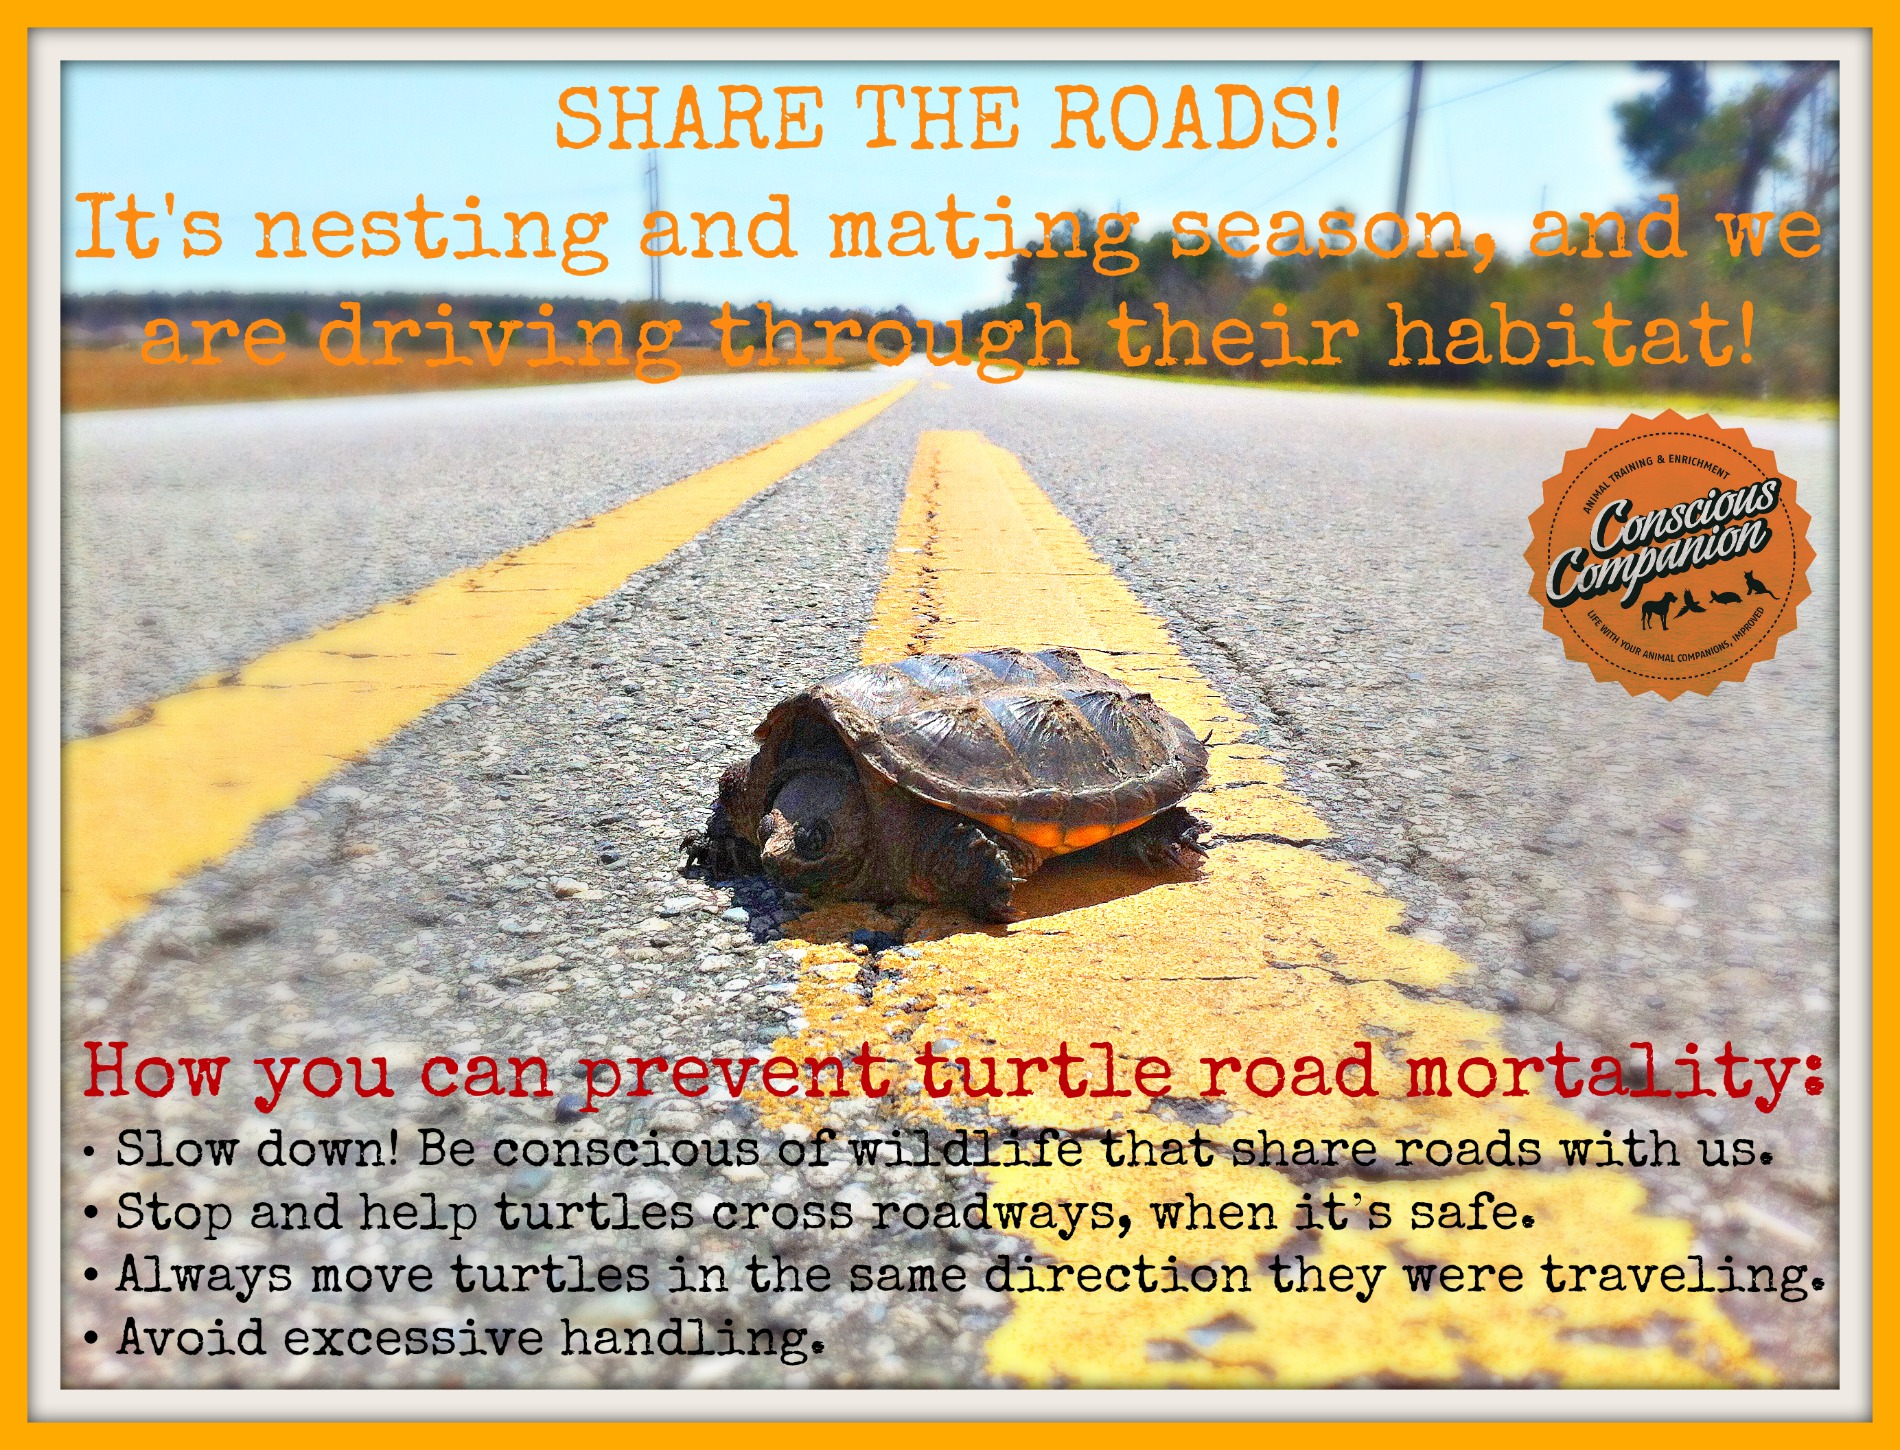 Why Did The Turtle Cross The Road Conscious Companion